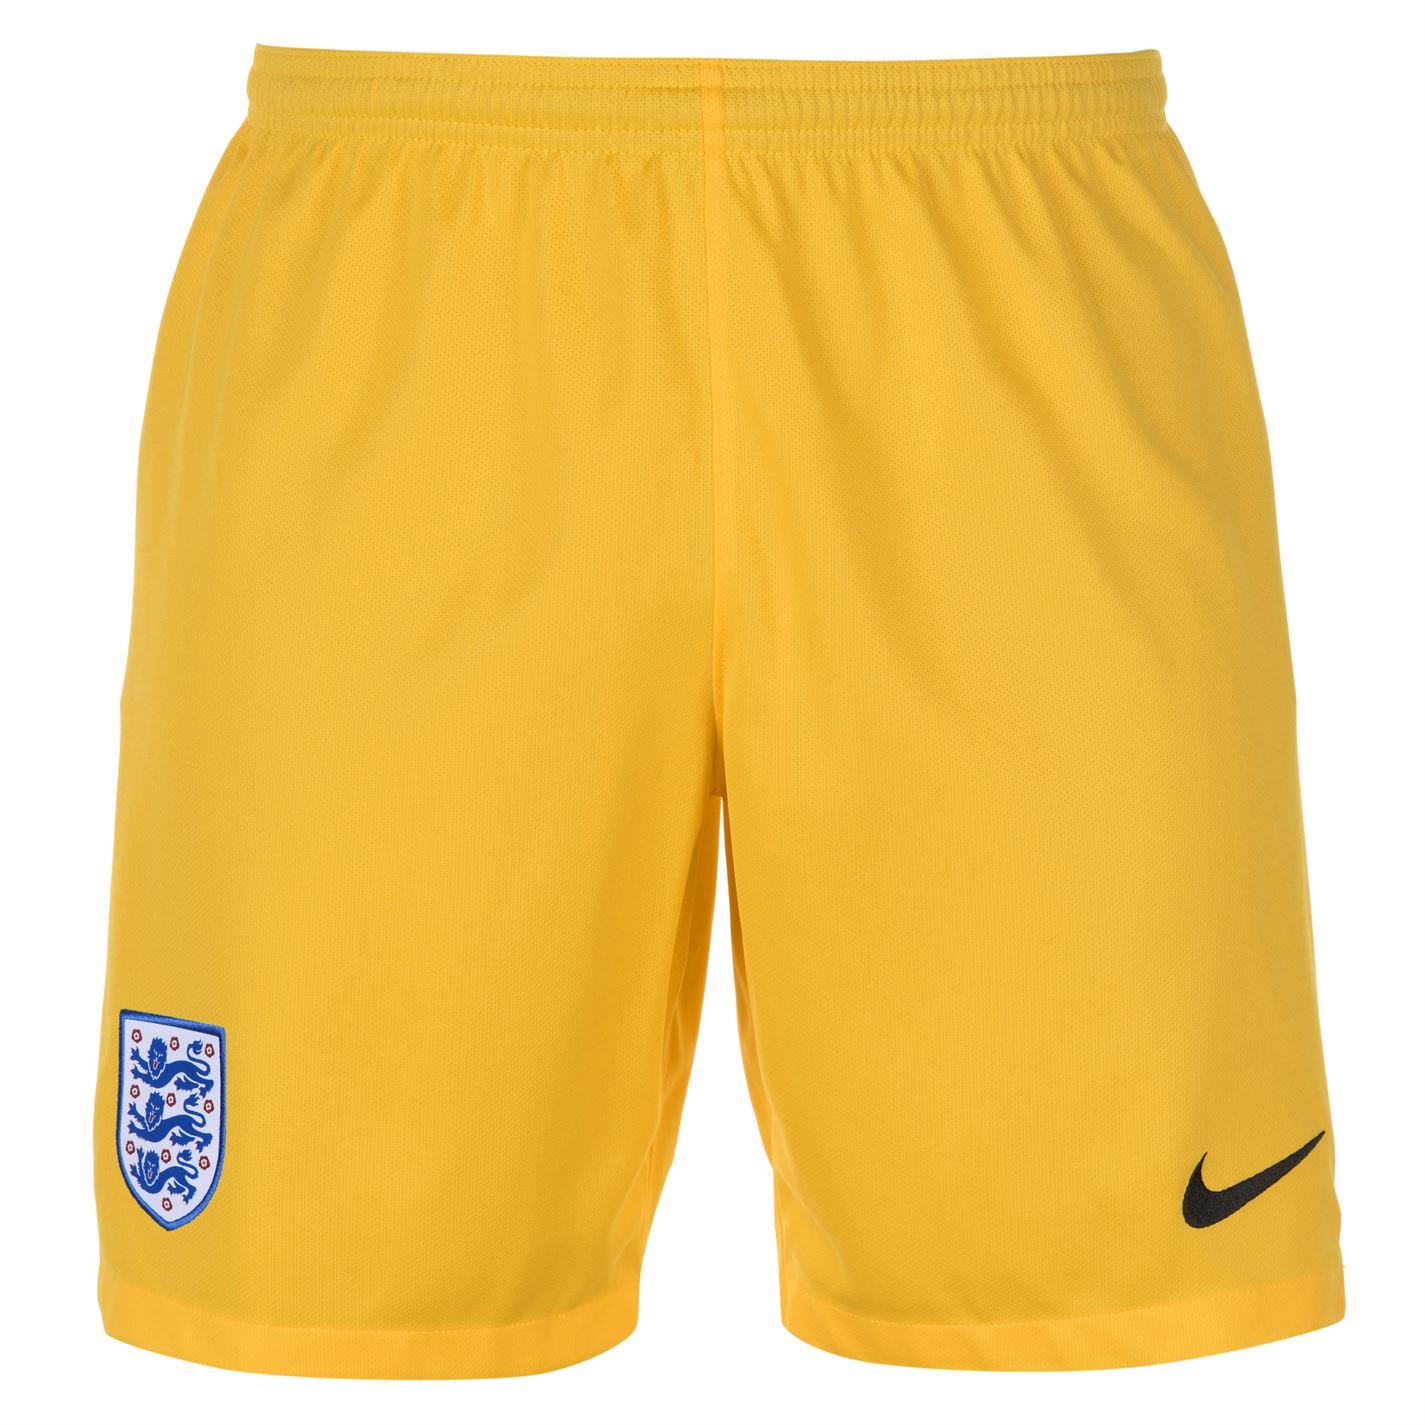 Details about Nike England Goalkeeper Shorts FIFA World Cup 2018 Mens  Yellow Football Soccer 40164fb4a